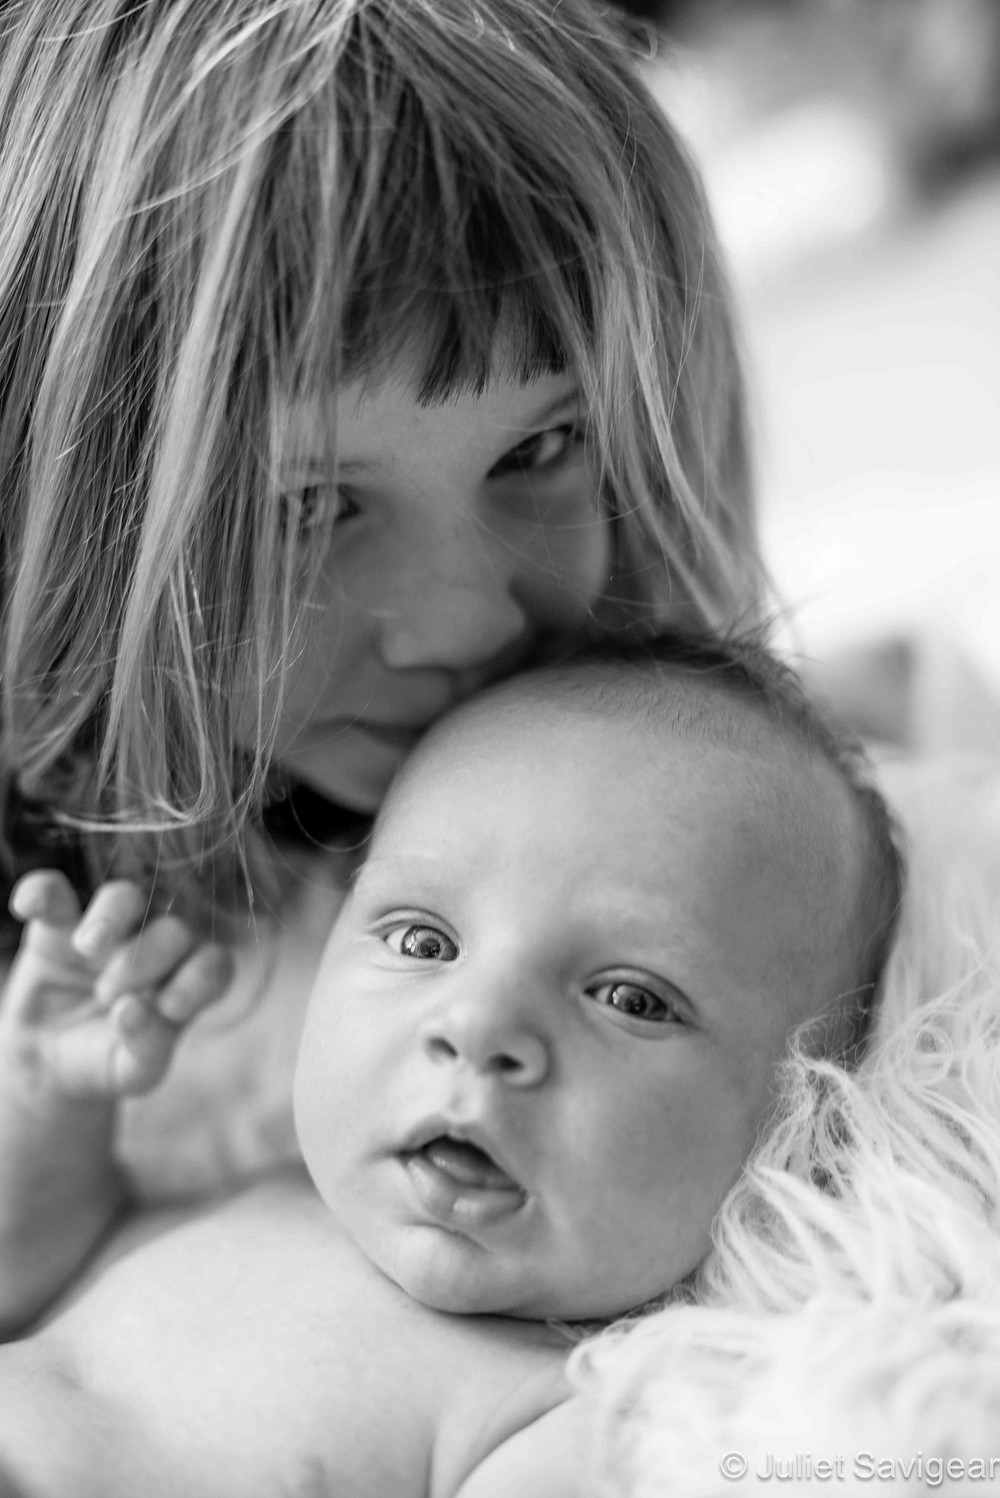 My New Brother - Baby & Children's Photography, Tooting